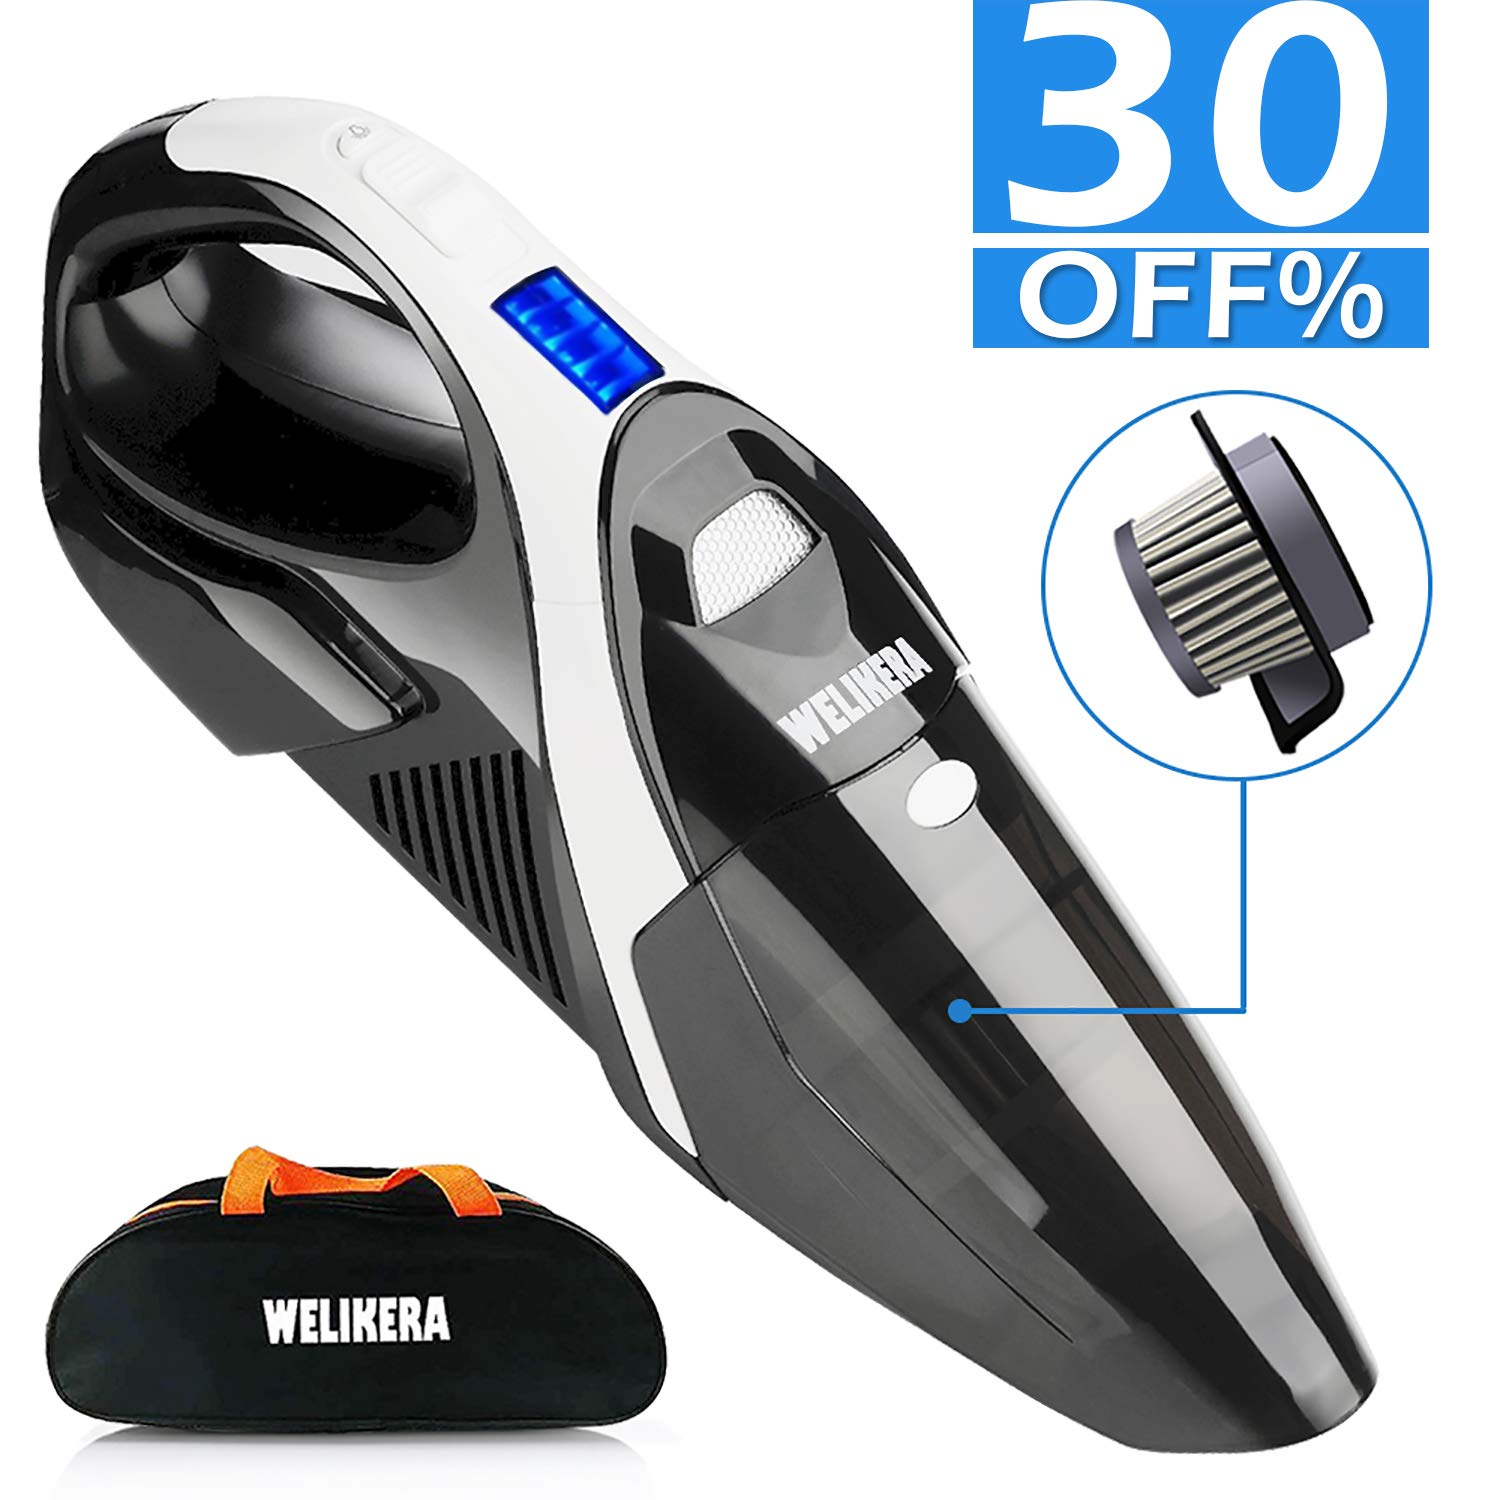 Handheld Vacuum, WELIKERA 7KPA Hand Vacuum Cordless, Car Vacuum Cleaner with Li-ion Battery & Stainless Steel Filter, Rechargeable Hand Vac for Home Pet Hair, Car Cleaning[Upgraded Version]